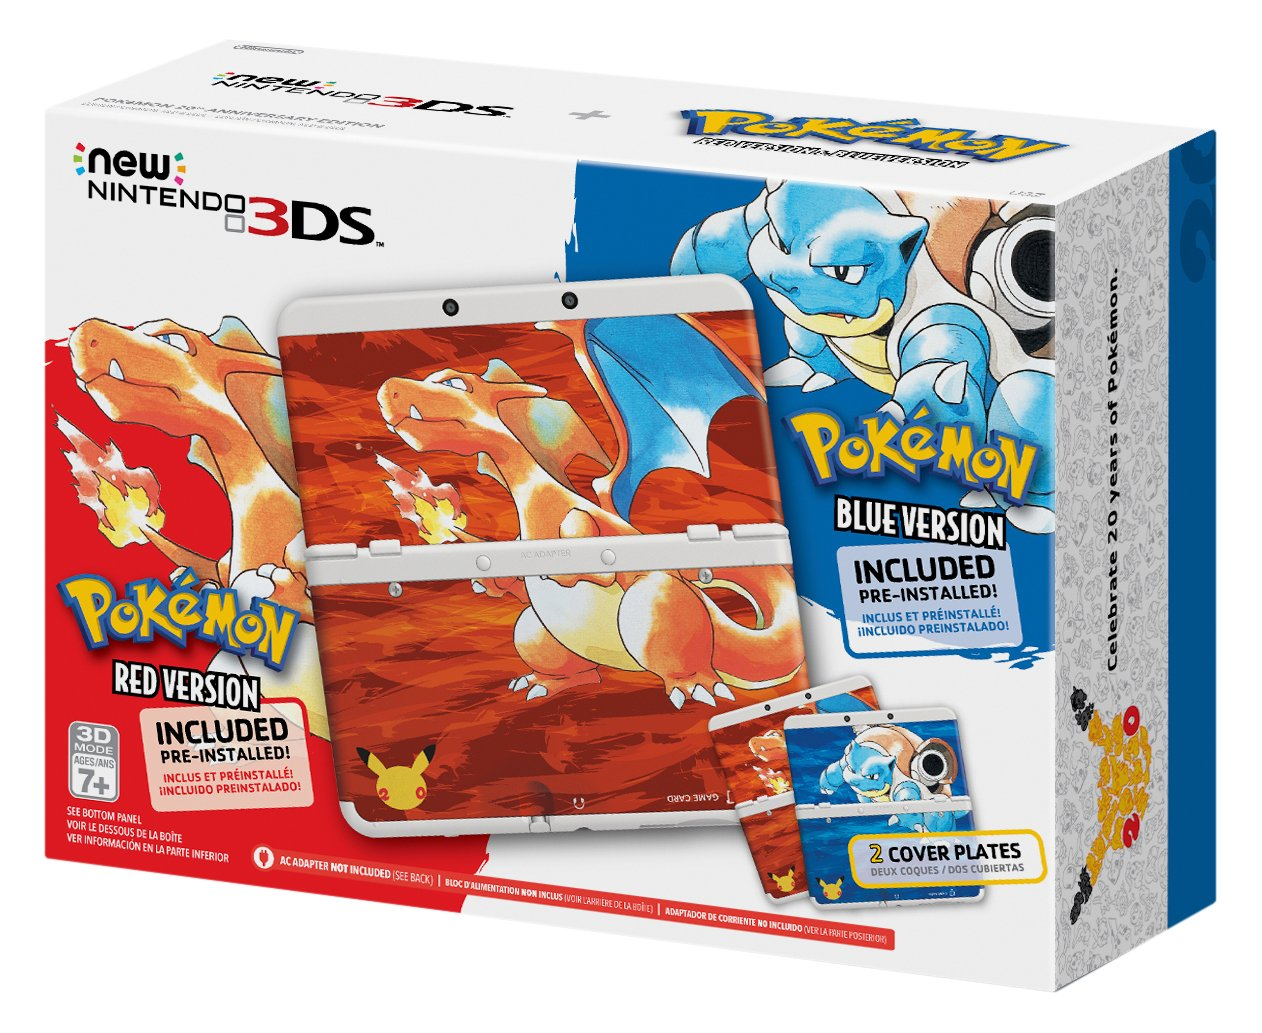 Nintendo New 3DS - Pokemon 20th Anniversary Edition [Discontinued] by Nintendo